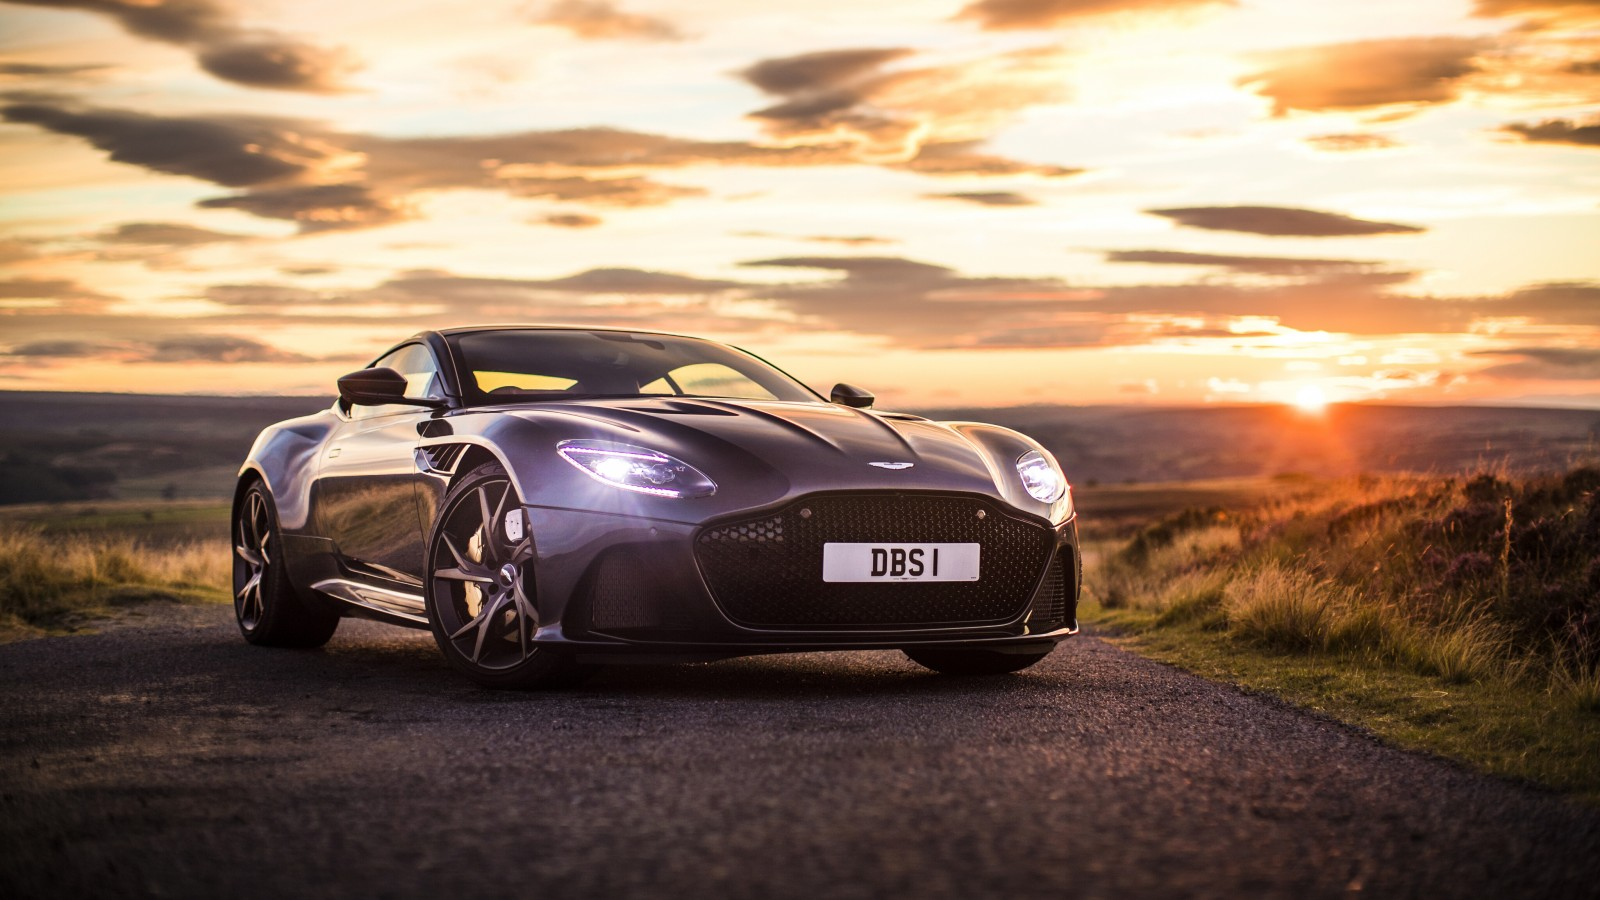 Aston Martin Dbs Superleggera K X